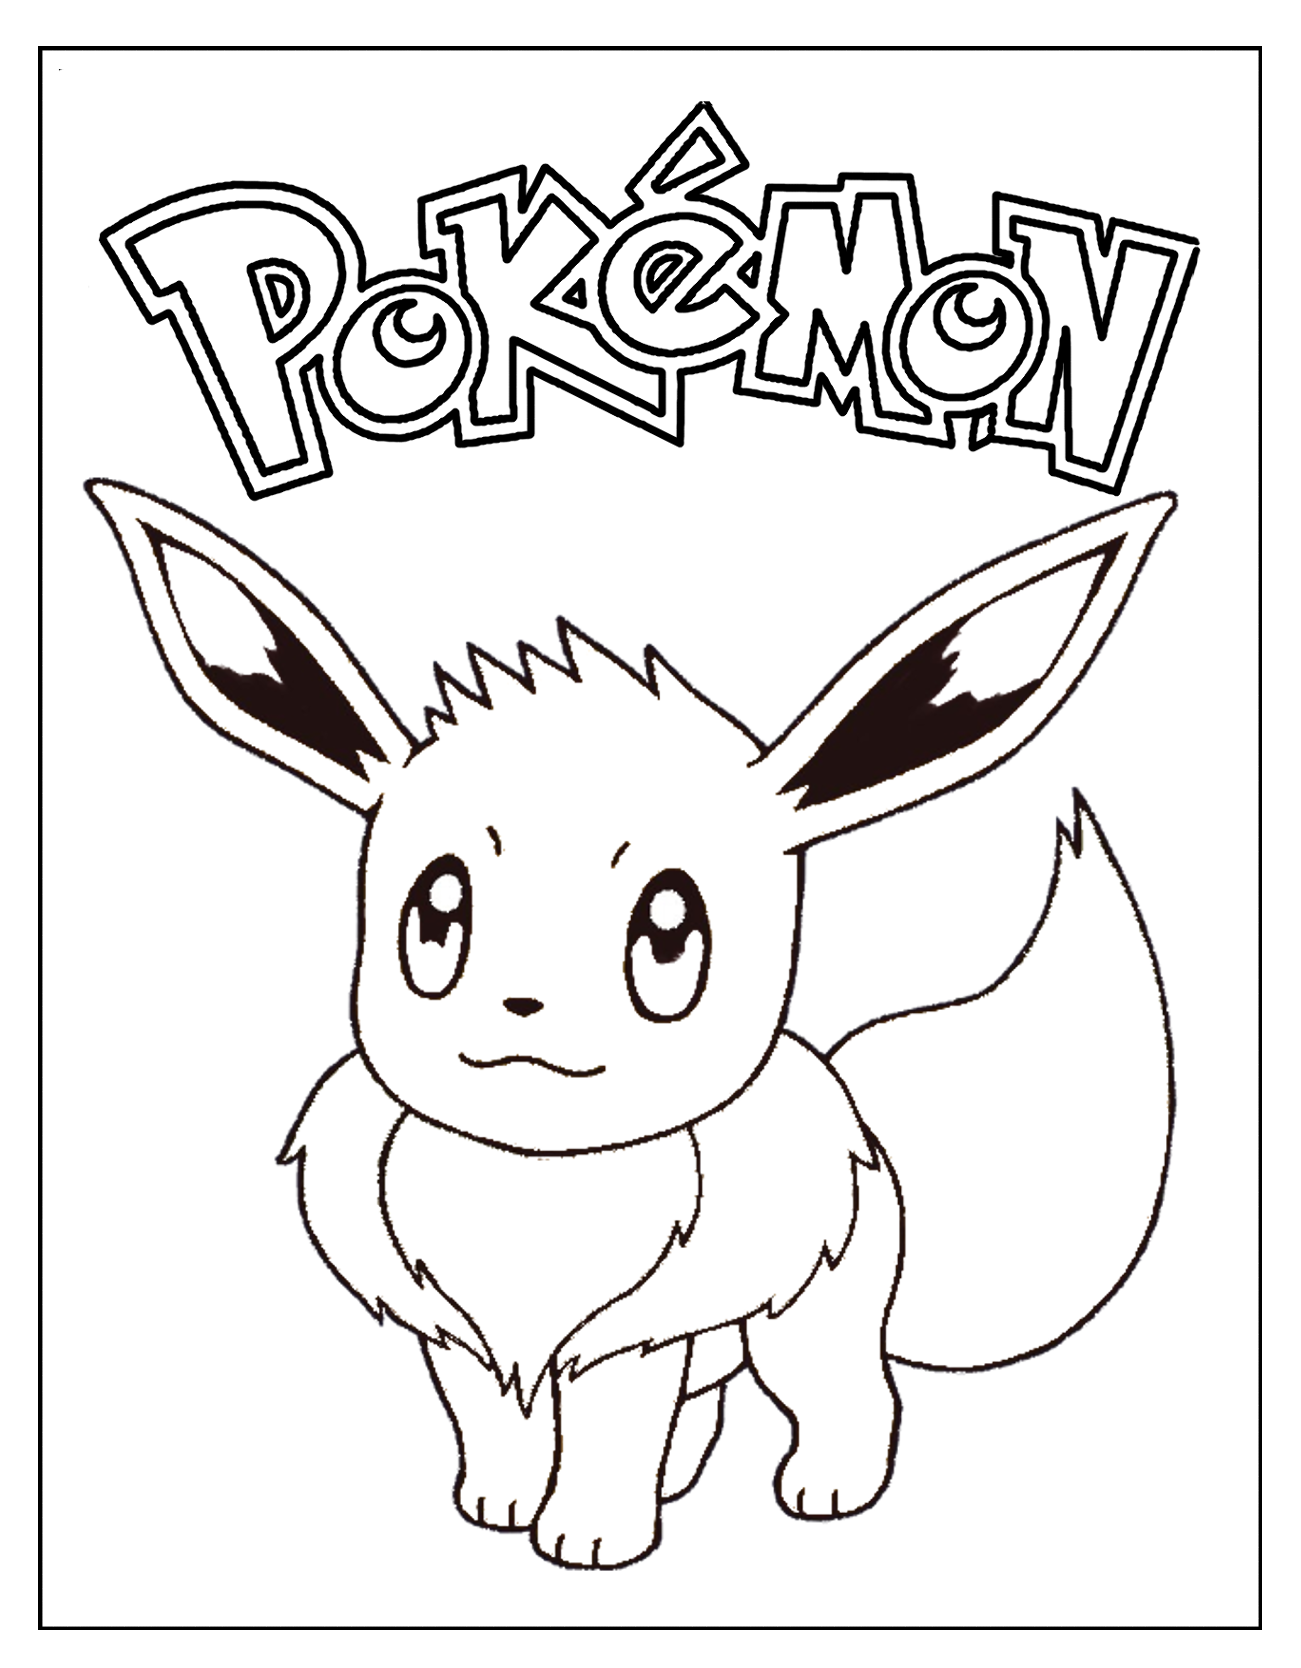 Pokemon Eevee Coloring Page Coloring Pages Pokemon Eevee Coloring Books